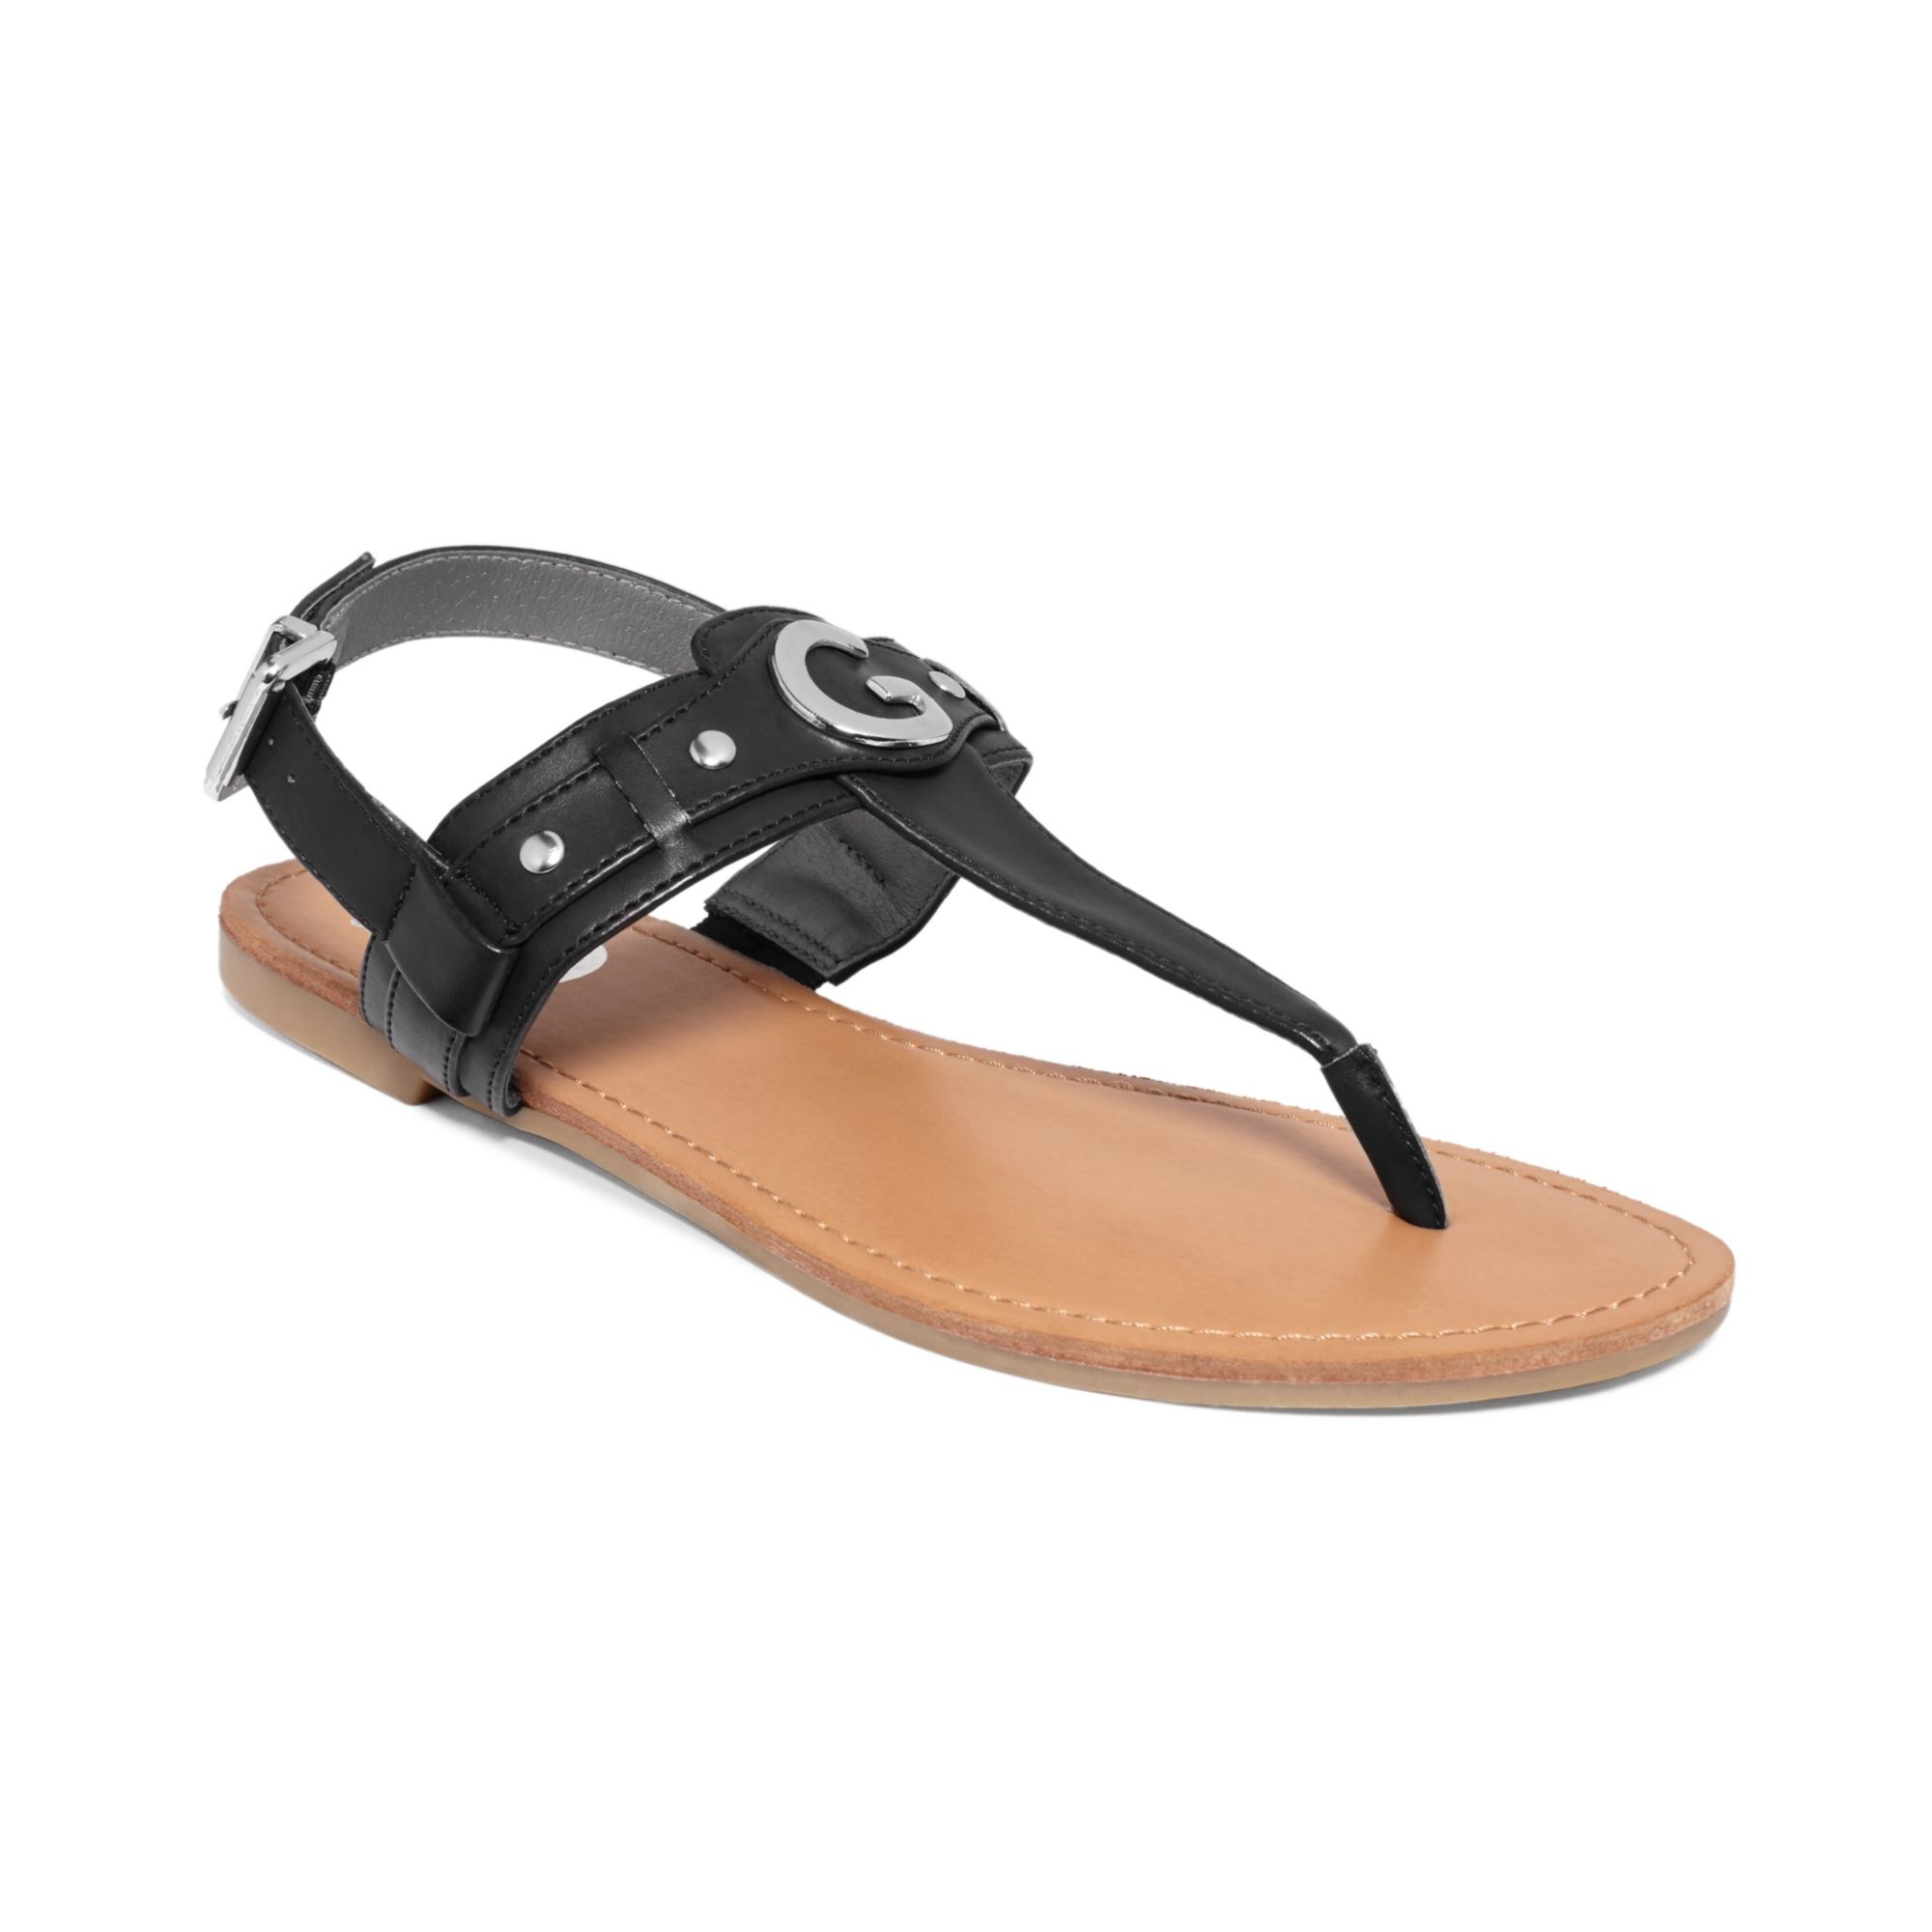 61e6cd24399 Lyst - G by Guess Womens Lundon Flat Thong Sandals in Black